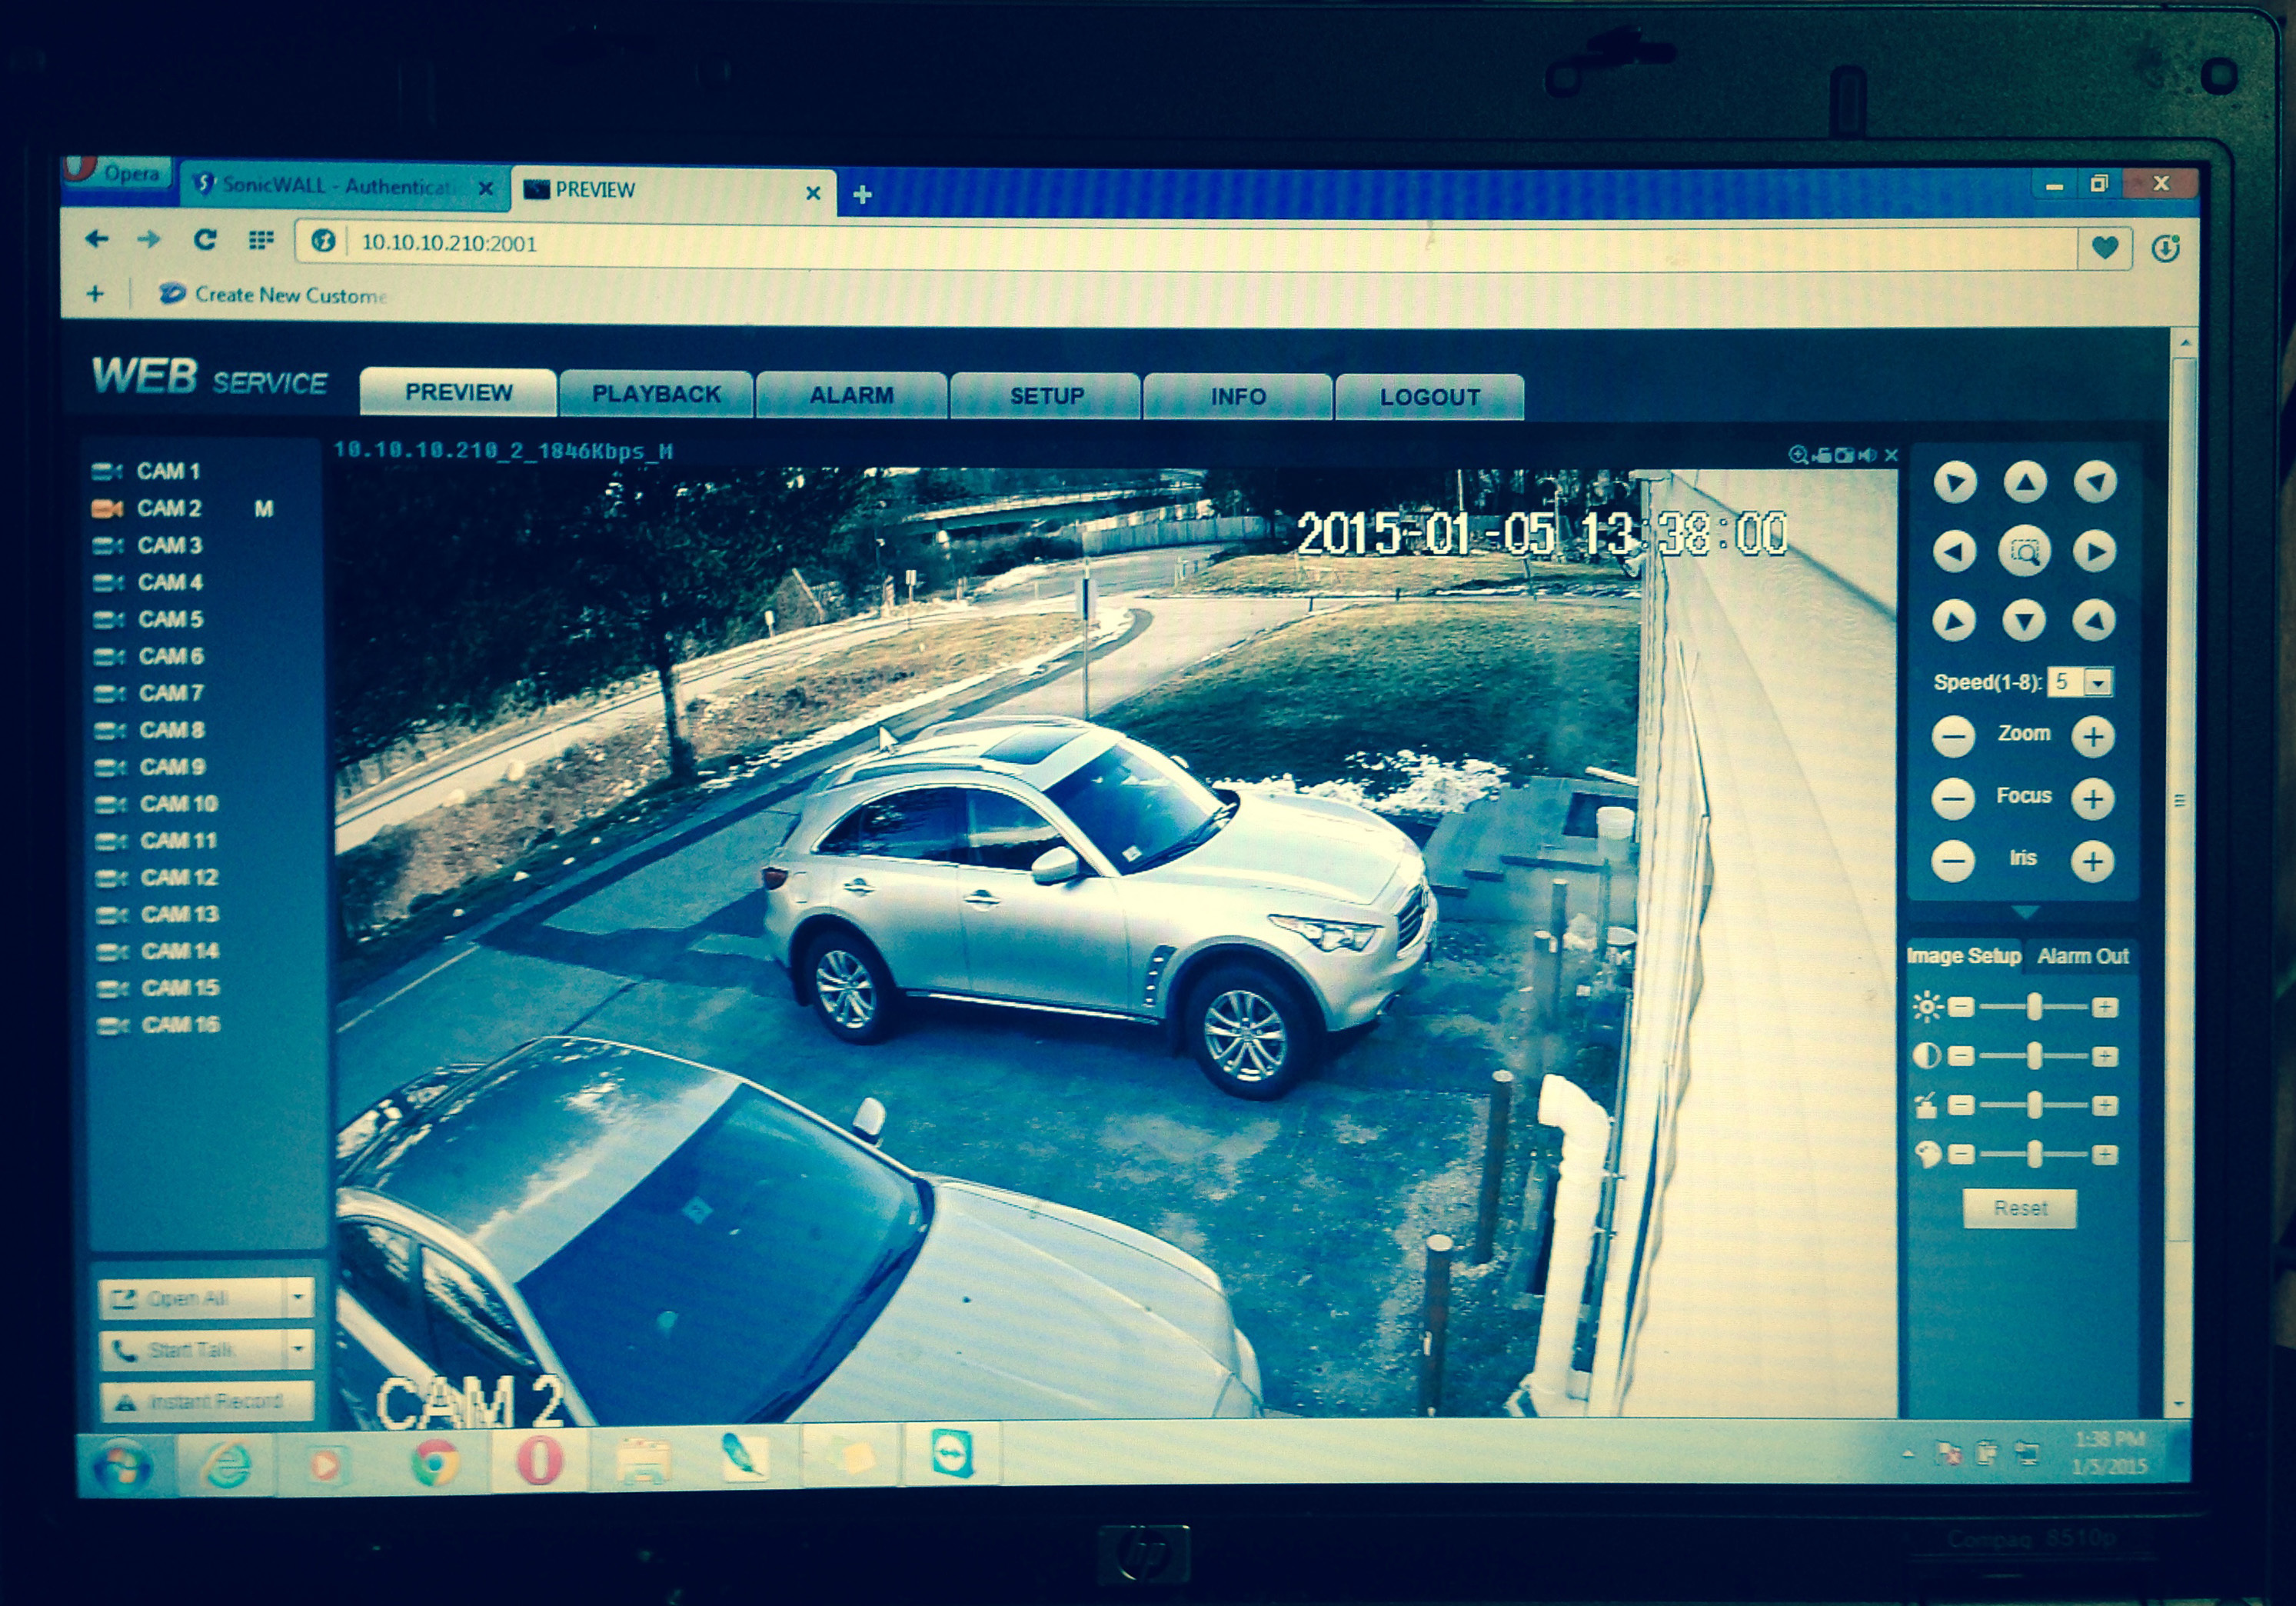 Security Cameras Bethel Me Local Business Near You And